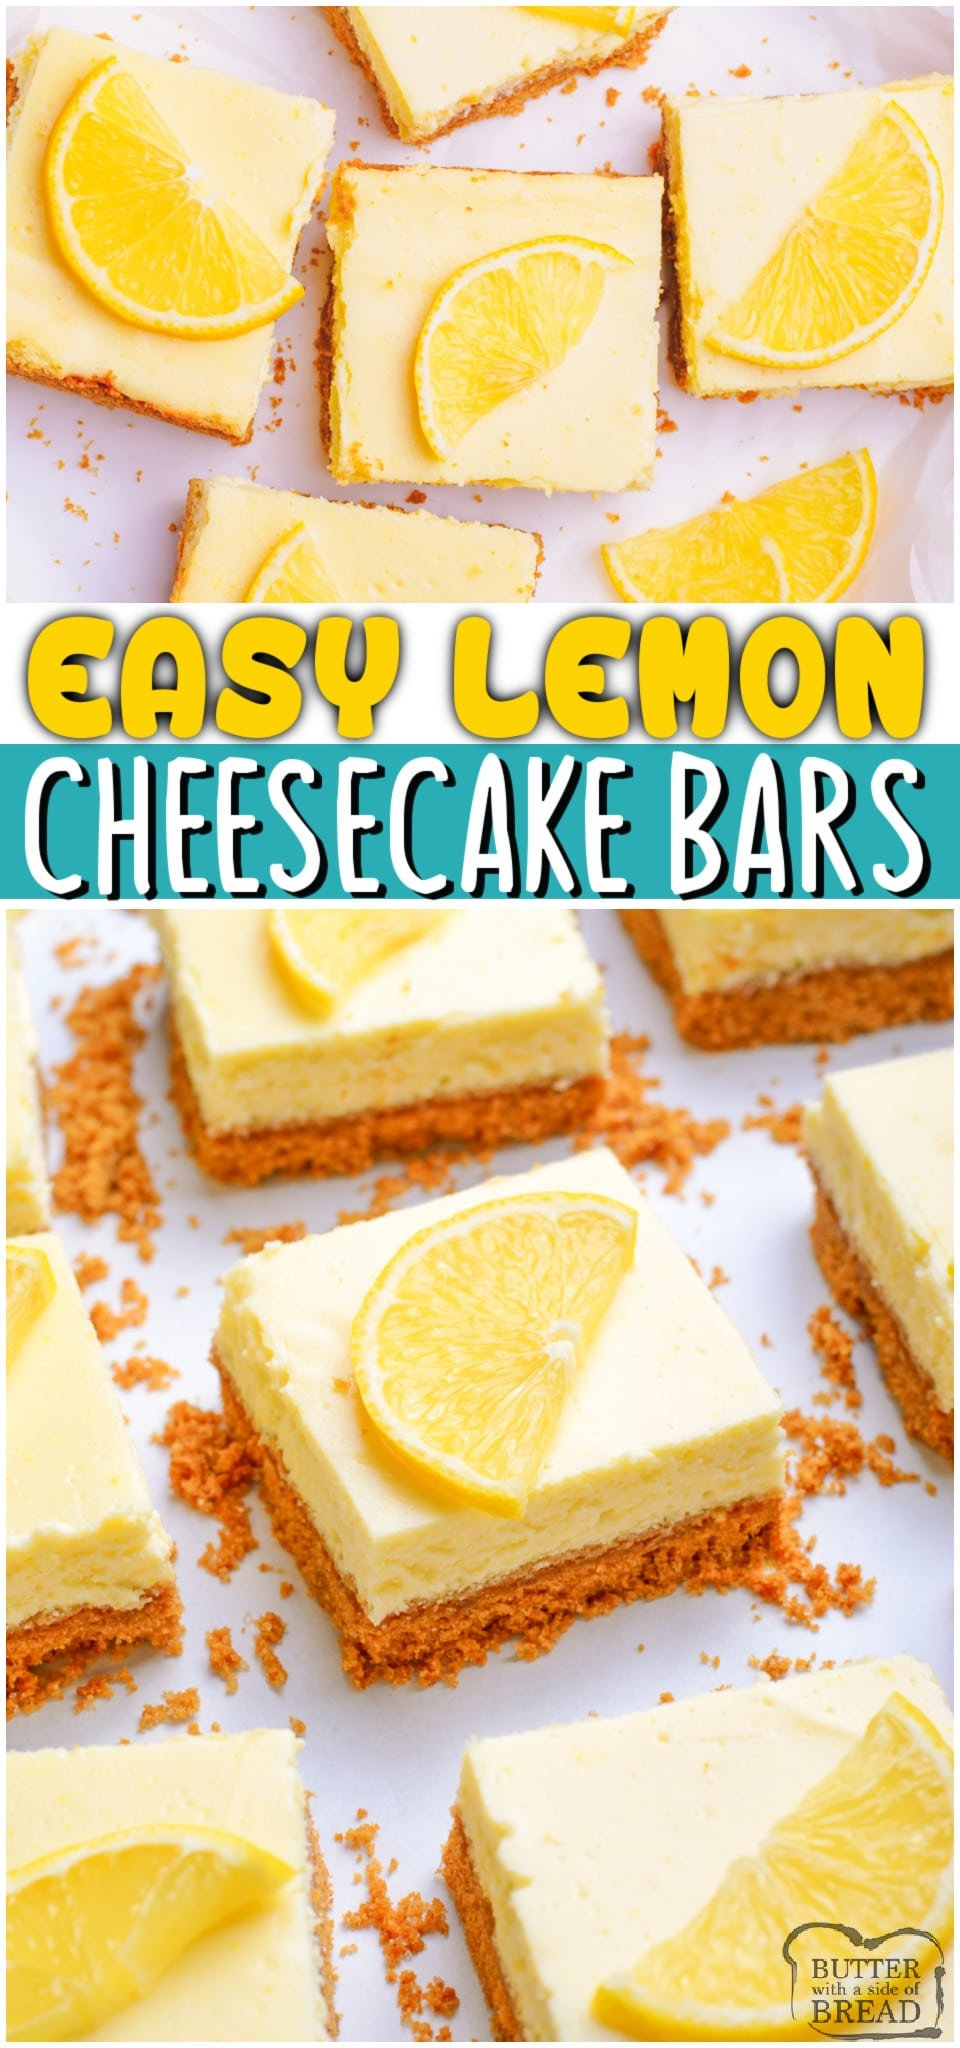 Lemon Cheesecake Bars are smooth & creamy lemon dessert with a graham cracker crust! Easy cheesecake bars that are perfectly sweet with just enough tart lemon flavor that everyone loves. #lemon #cheesecake #dessert #easyrecipe from BUTTER WITH A SIDE OF BREAD